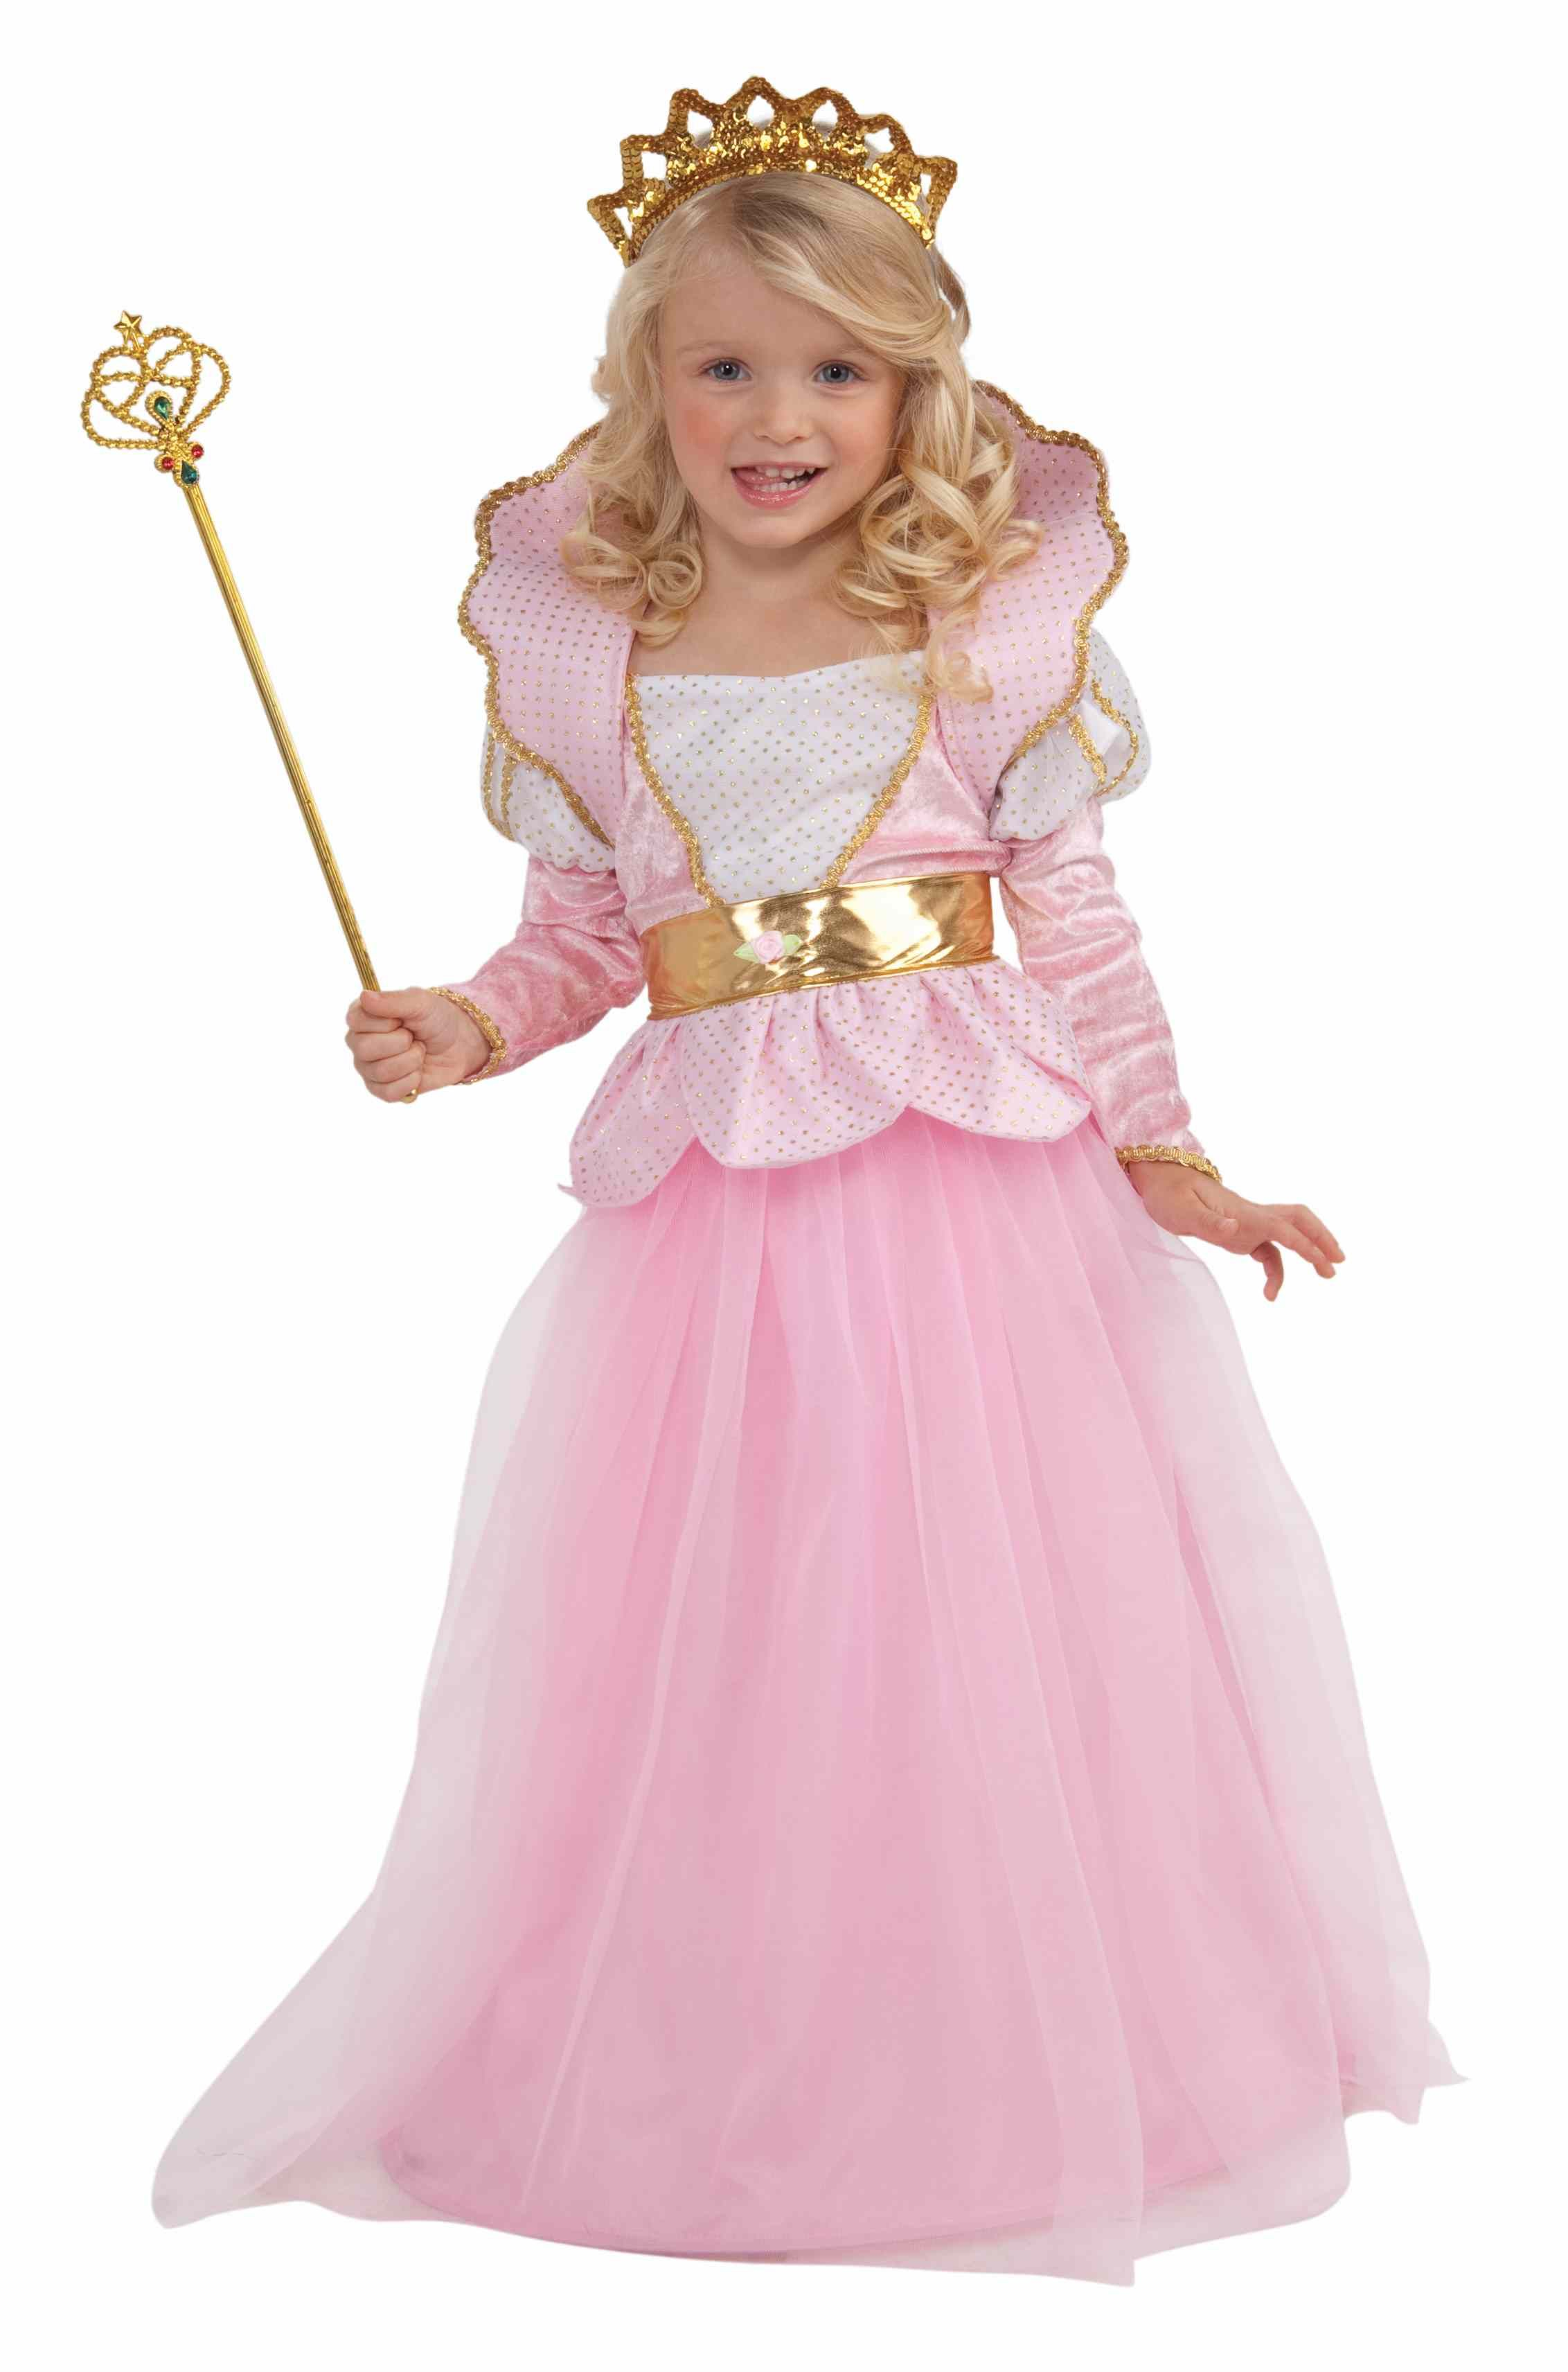 Halloween Costumes Princess 1000+ images about Princess Dress Up on Pinterest Children costumes, Princess